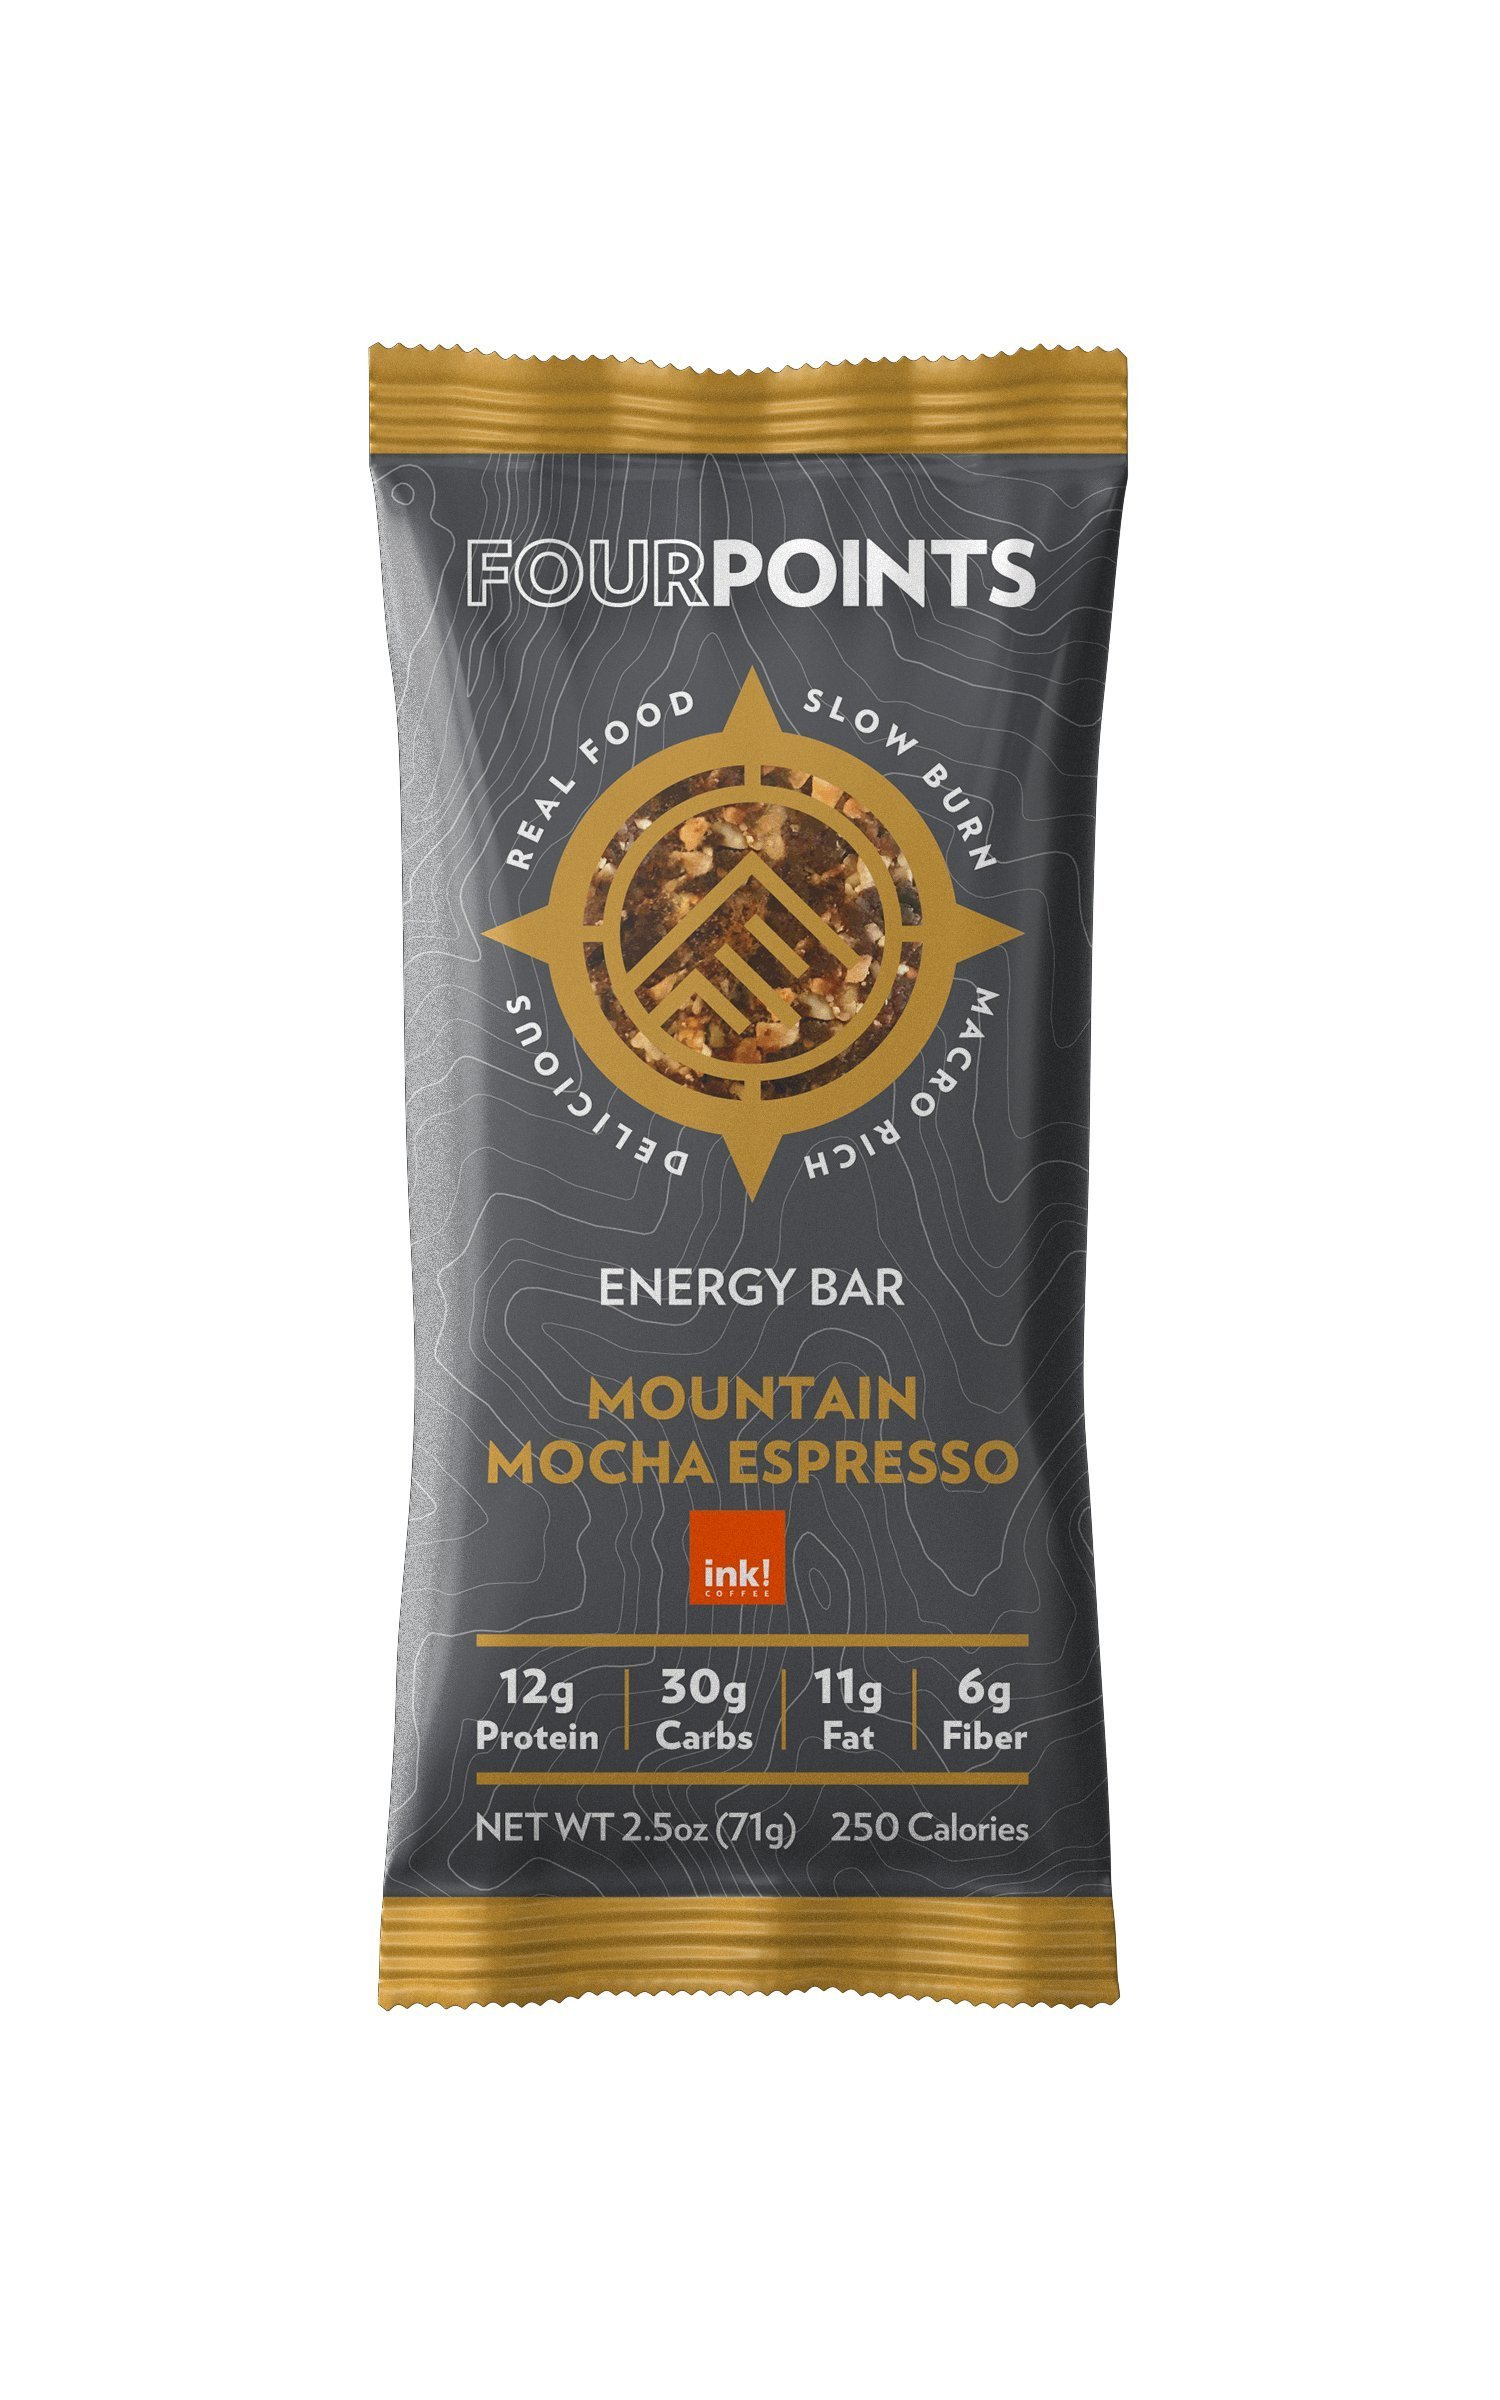 Fourpoints Mountain Mocha Espresso Bar - Box of 12 - Mountain Mocha Espresso, Box of 12 by Fourpoints